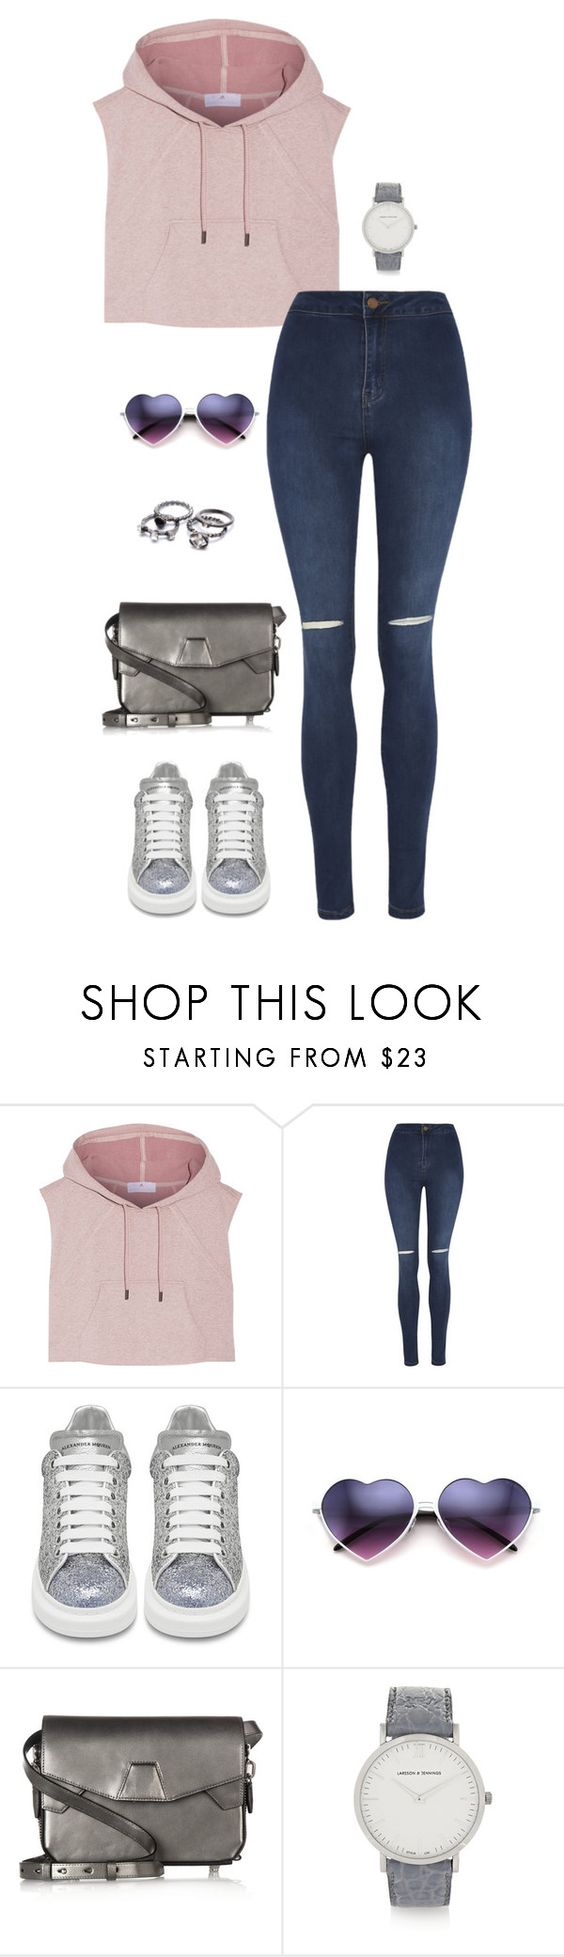 """""""Untitled #3374"""" by meandelstyle ❤ liked on Polyvore featuring adidas, George, Alexander McQueen, Alexander Wang and Larsson & Jennings"""